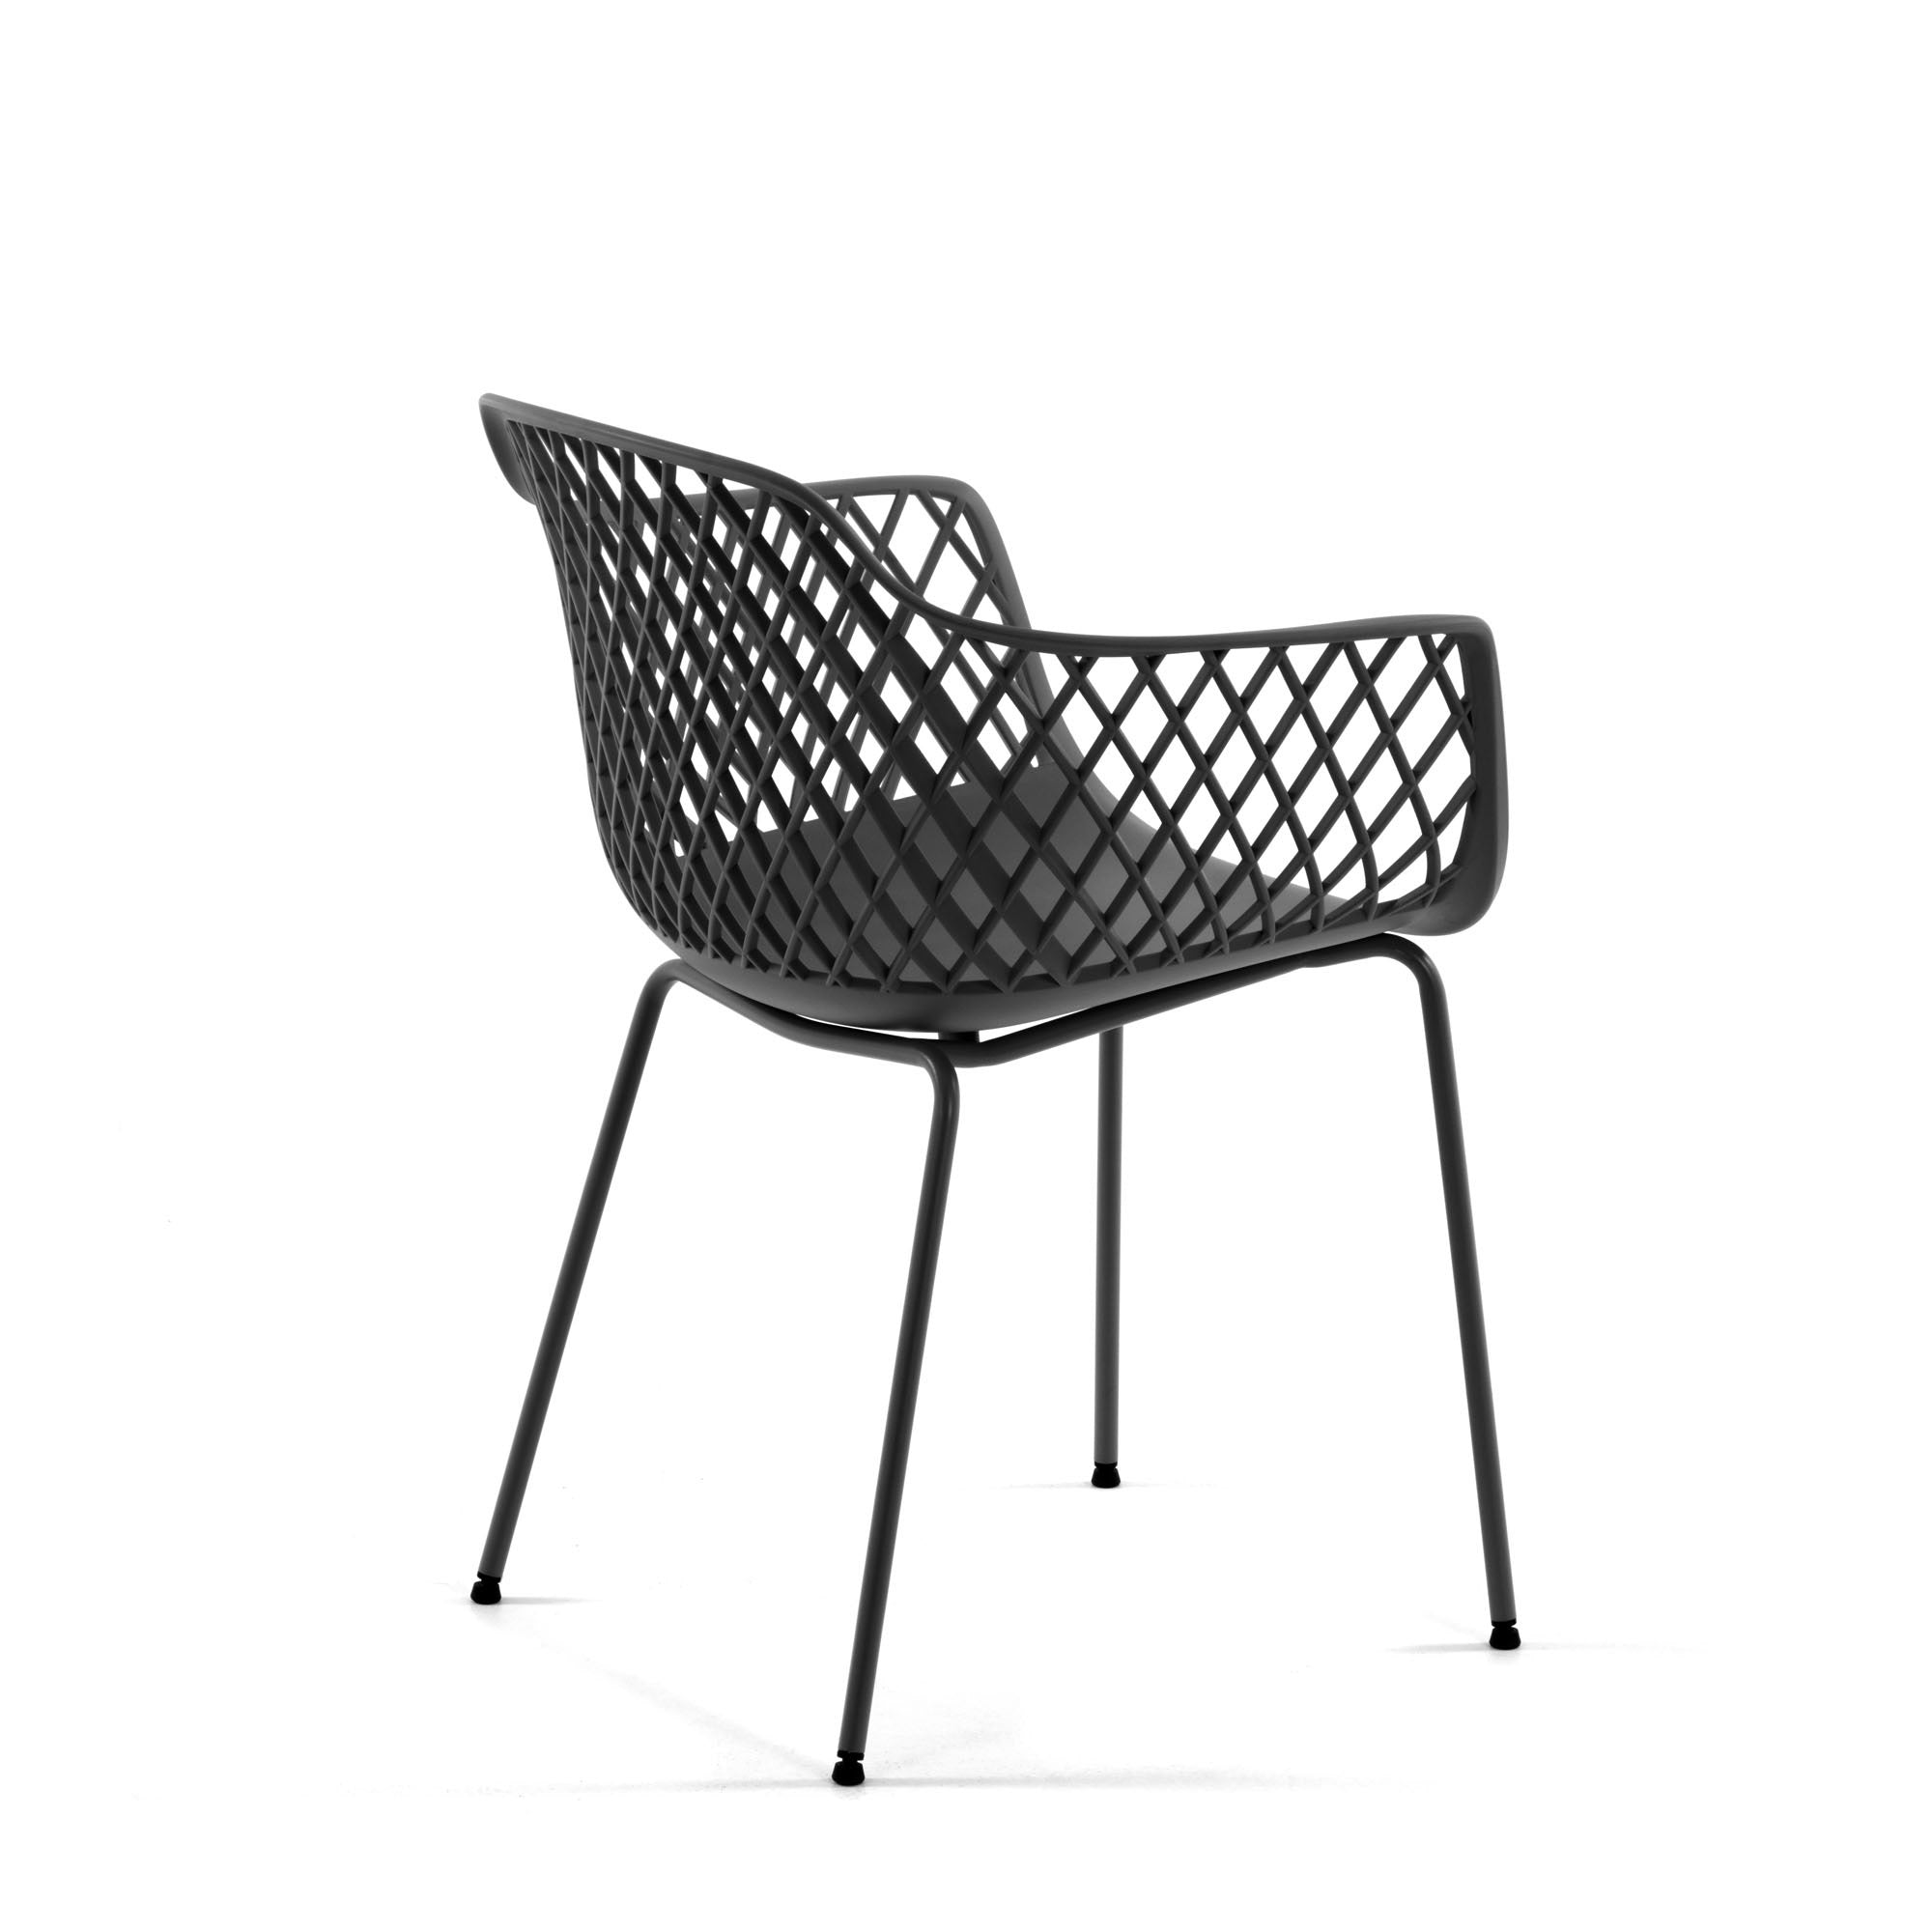 Timoi Grey Chair, Chair - Home-Buy Interiors